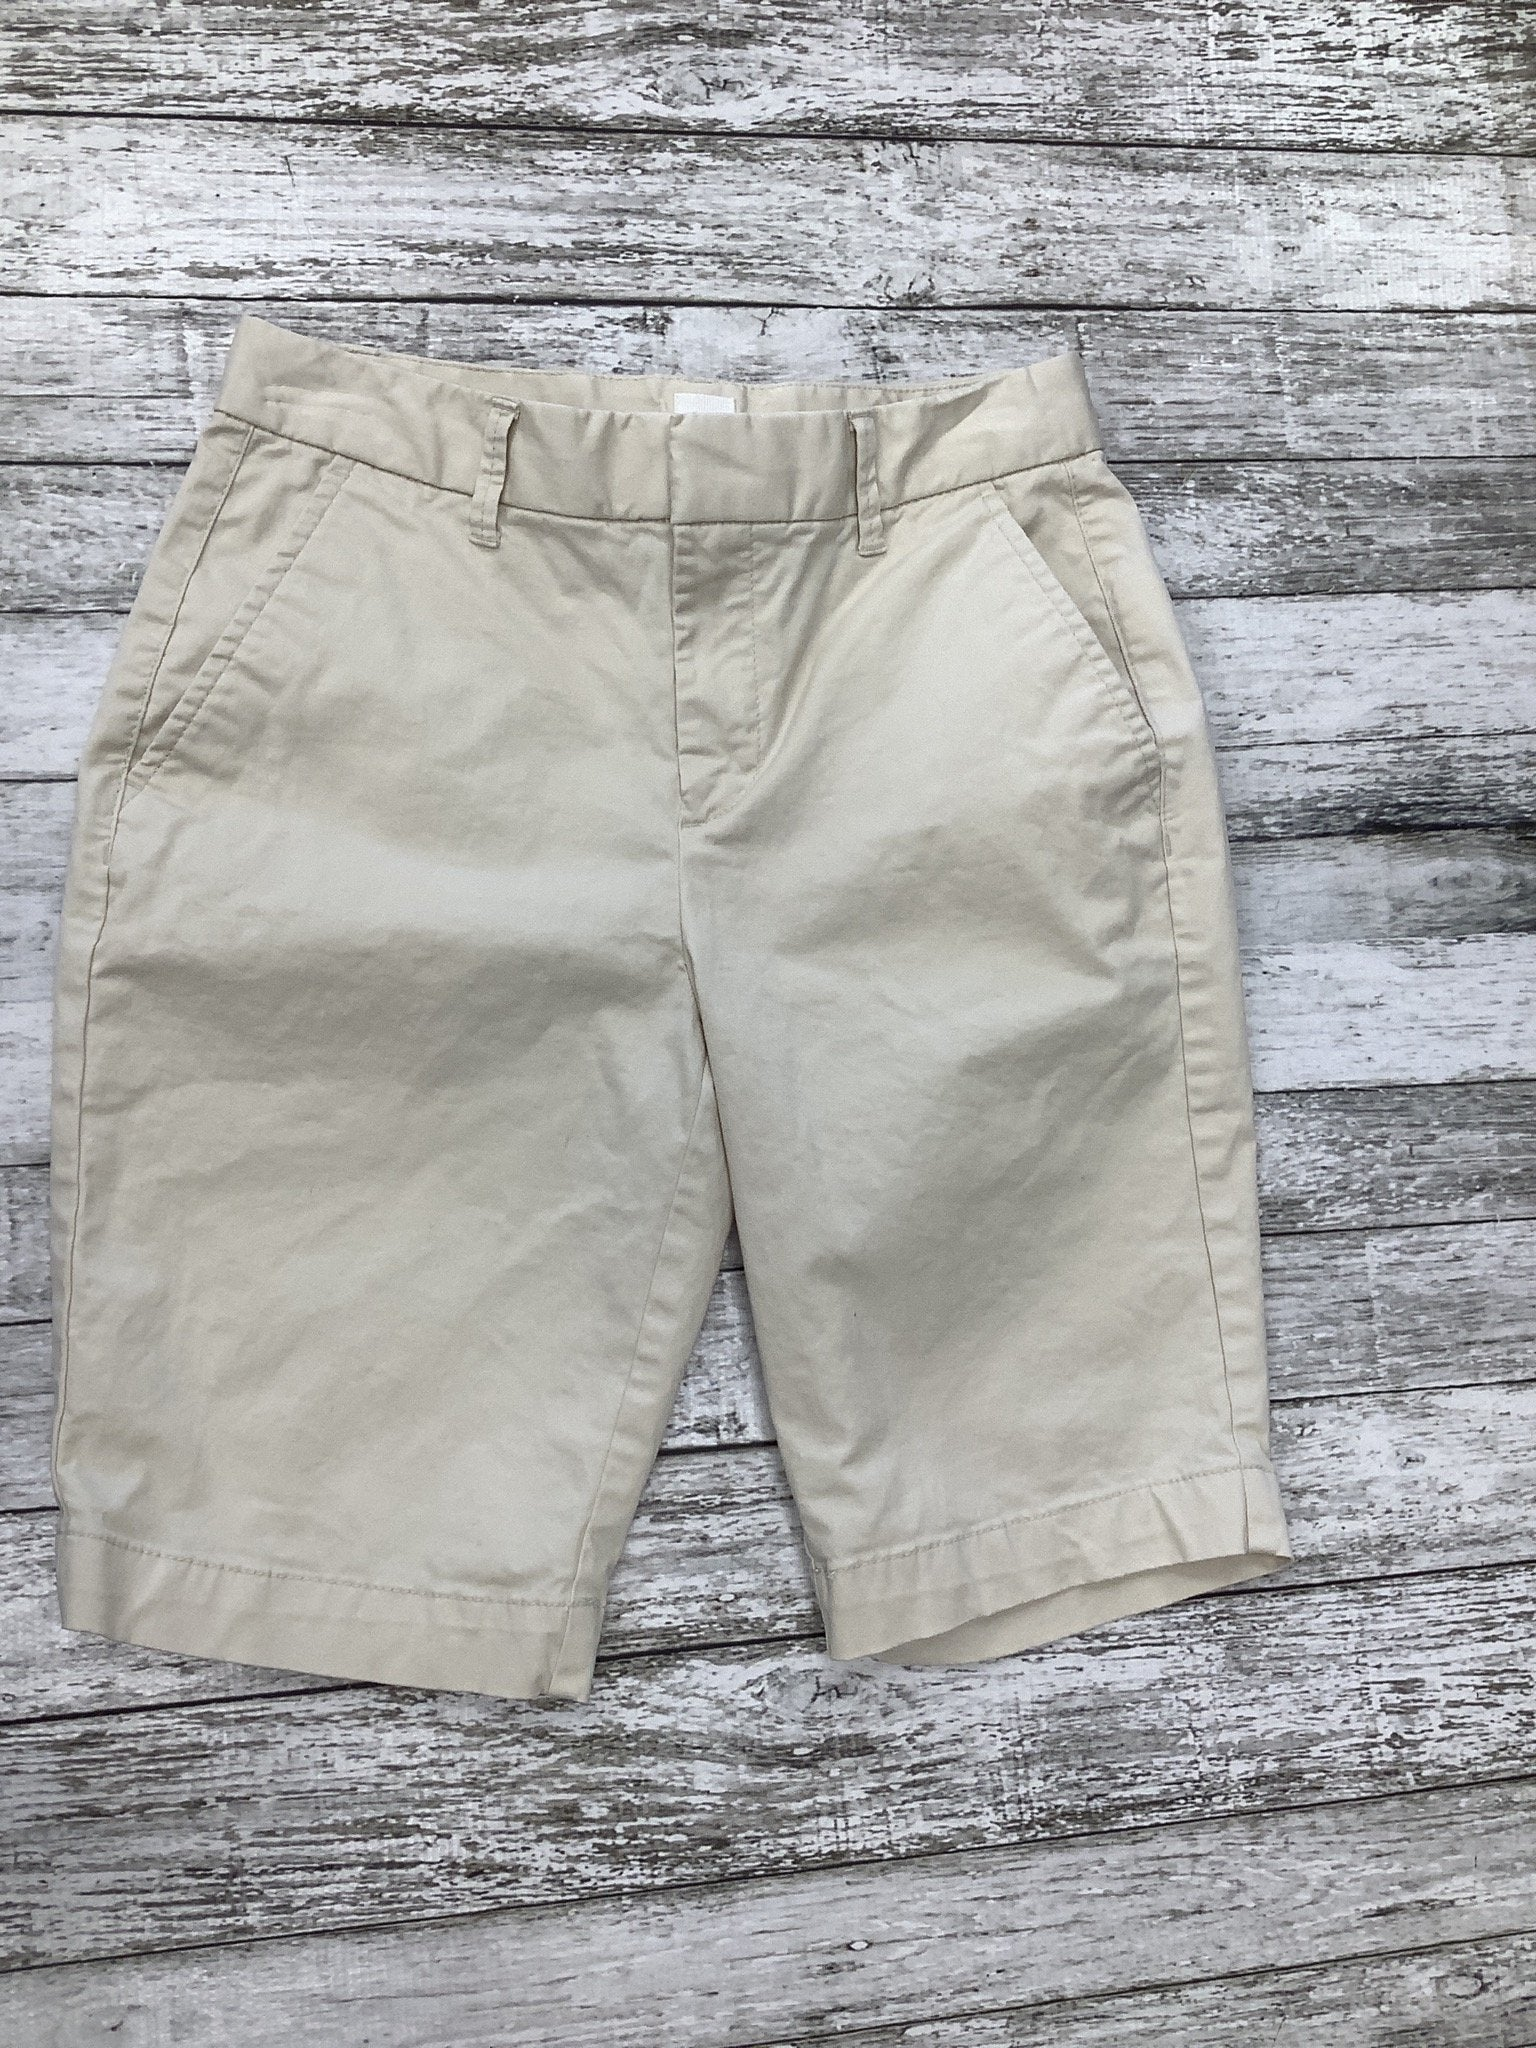 Primary Photo - brand: gap , style: shorts , color: cream , size: 0 , sku: 105-3221-8343